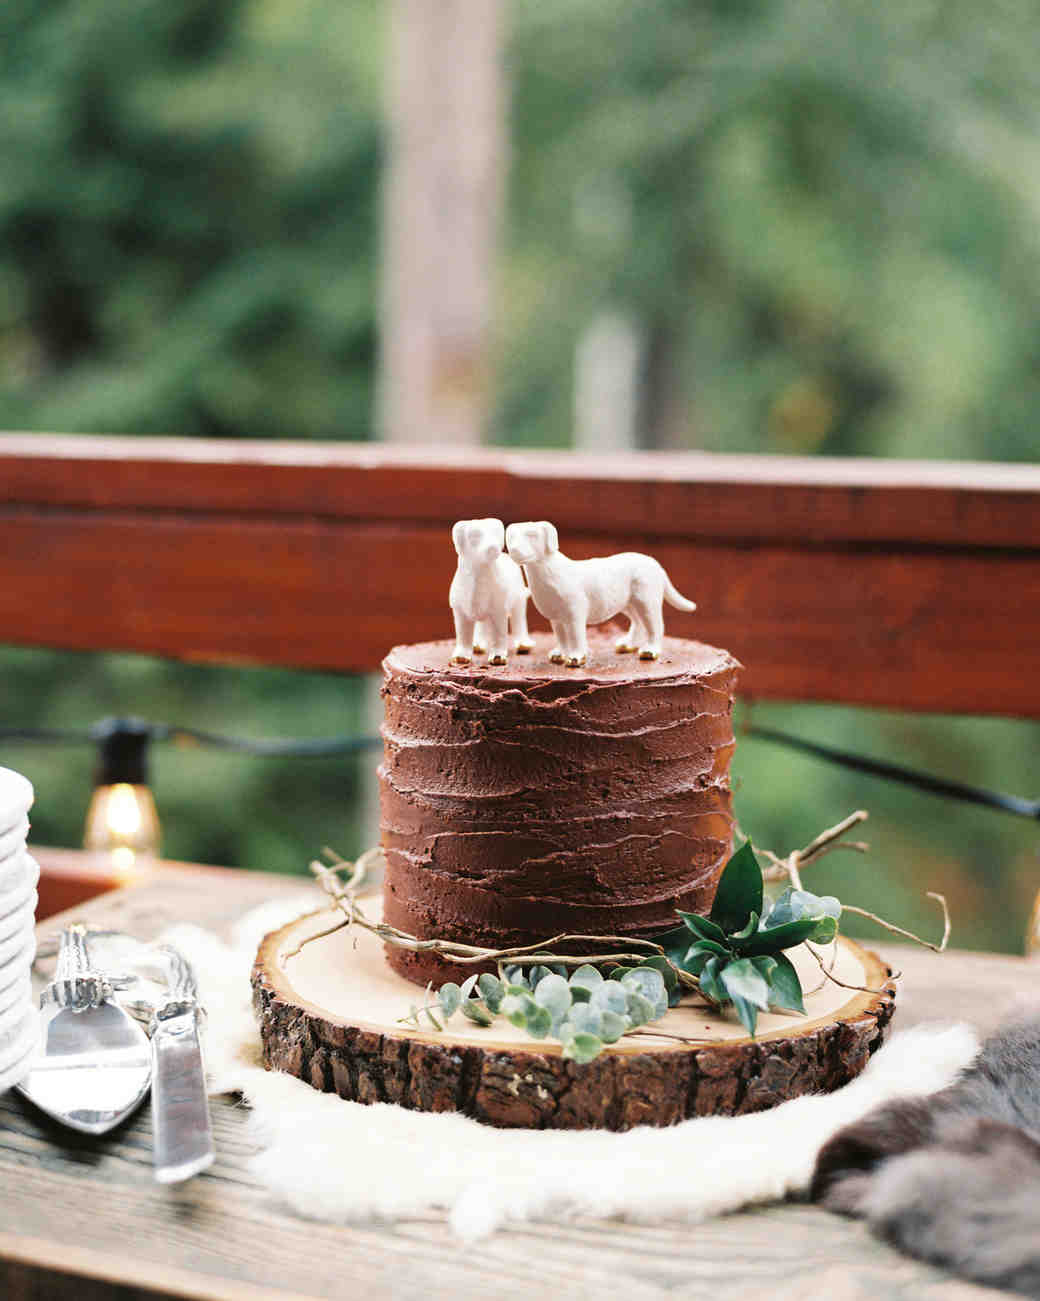 Wedding Cake with Dog Decorations on Top